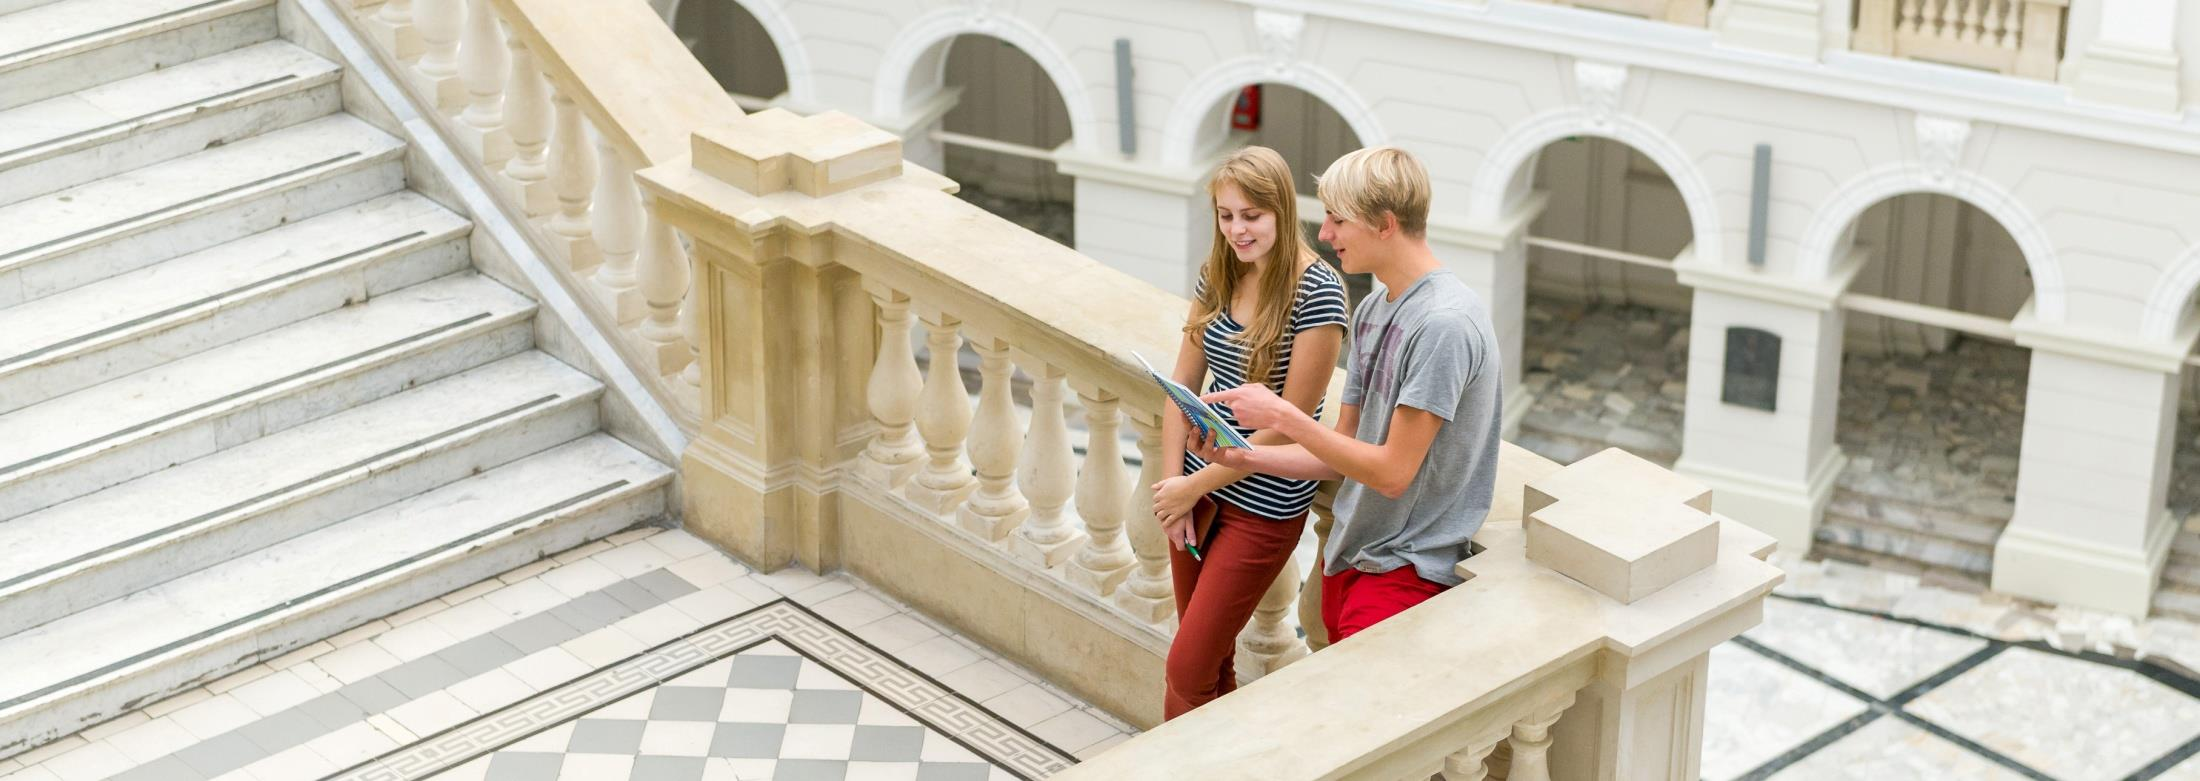 Warsaw University of Technology offers over 100 postgraduate studies.